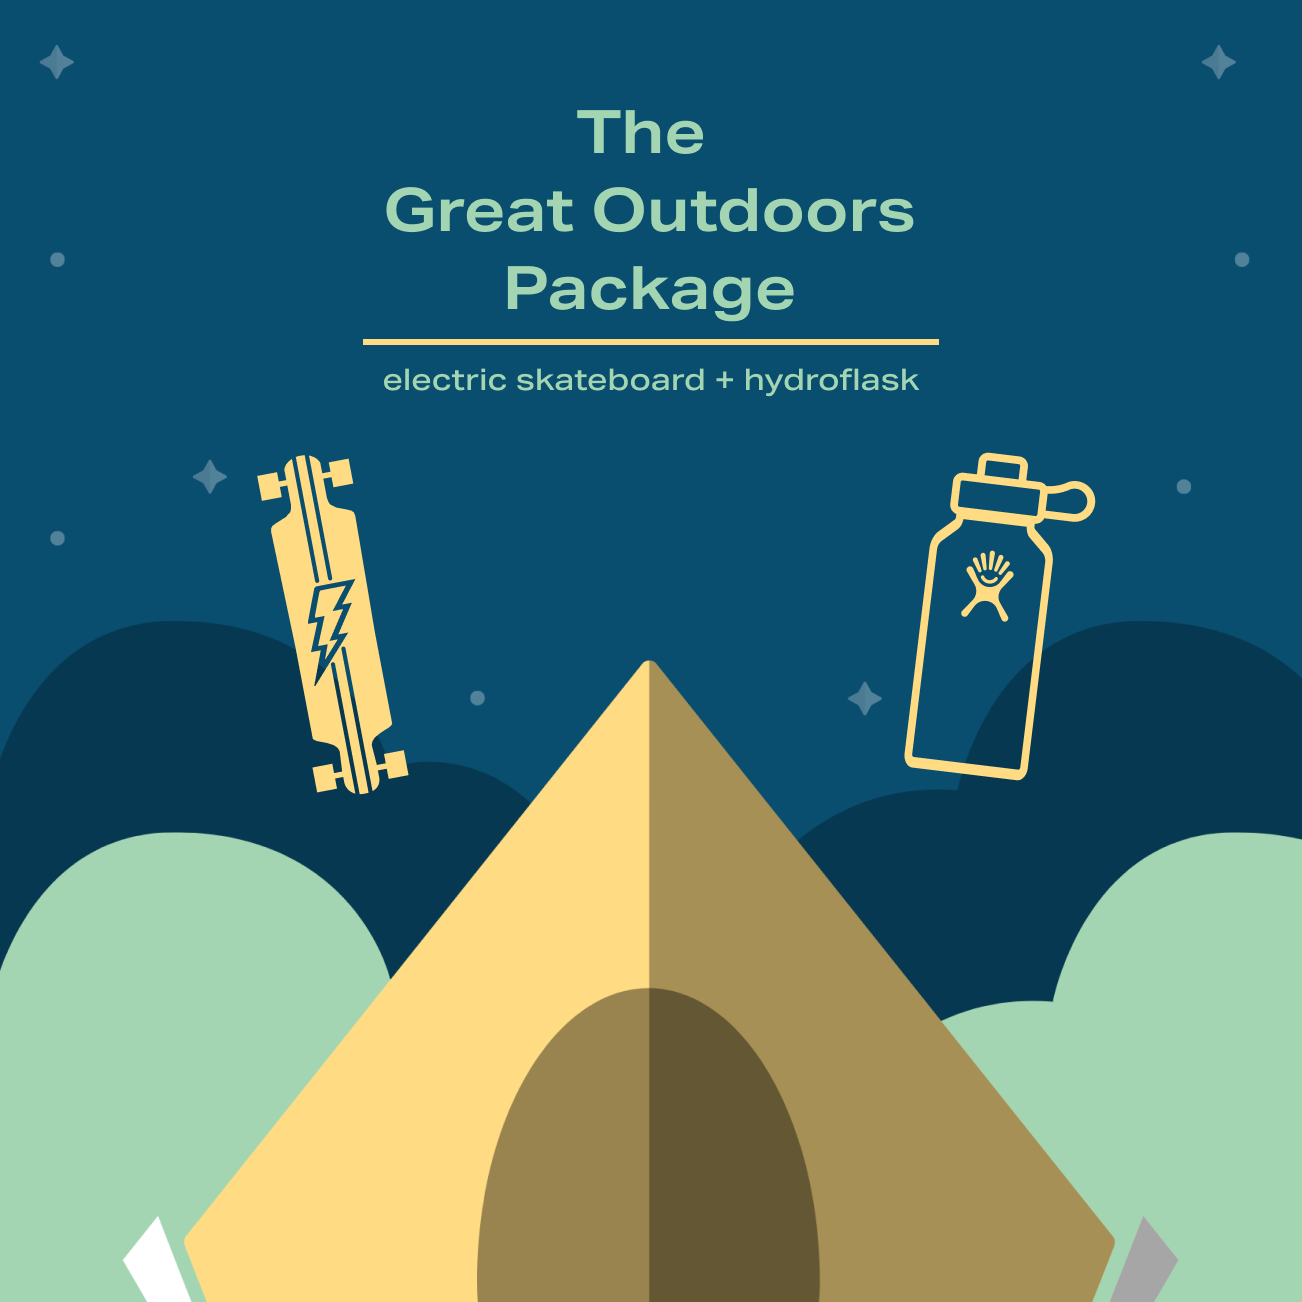 The Great Outdoors Package - electronic skateboard and hydroflask